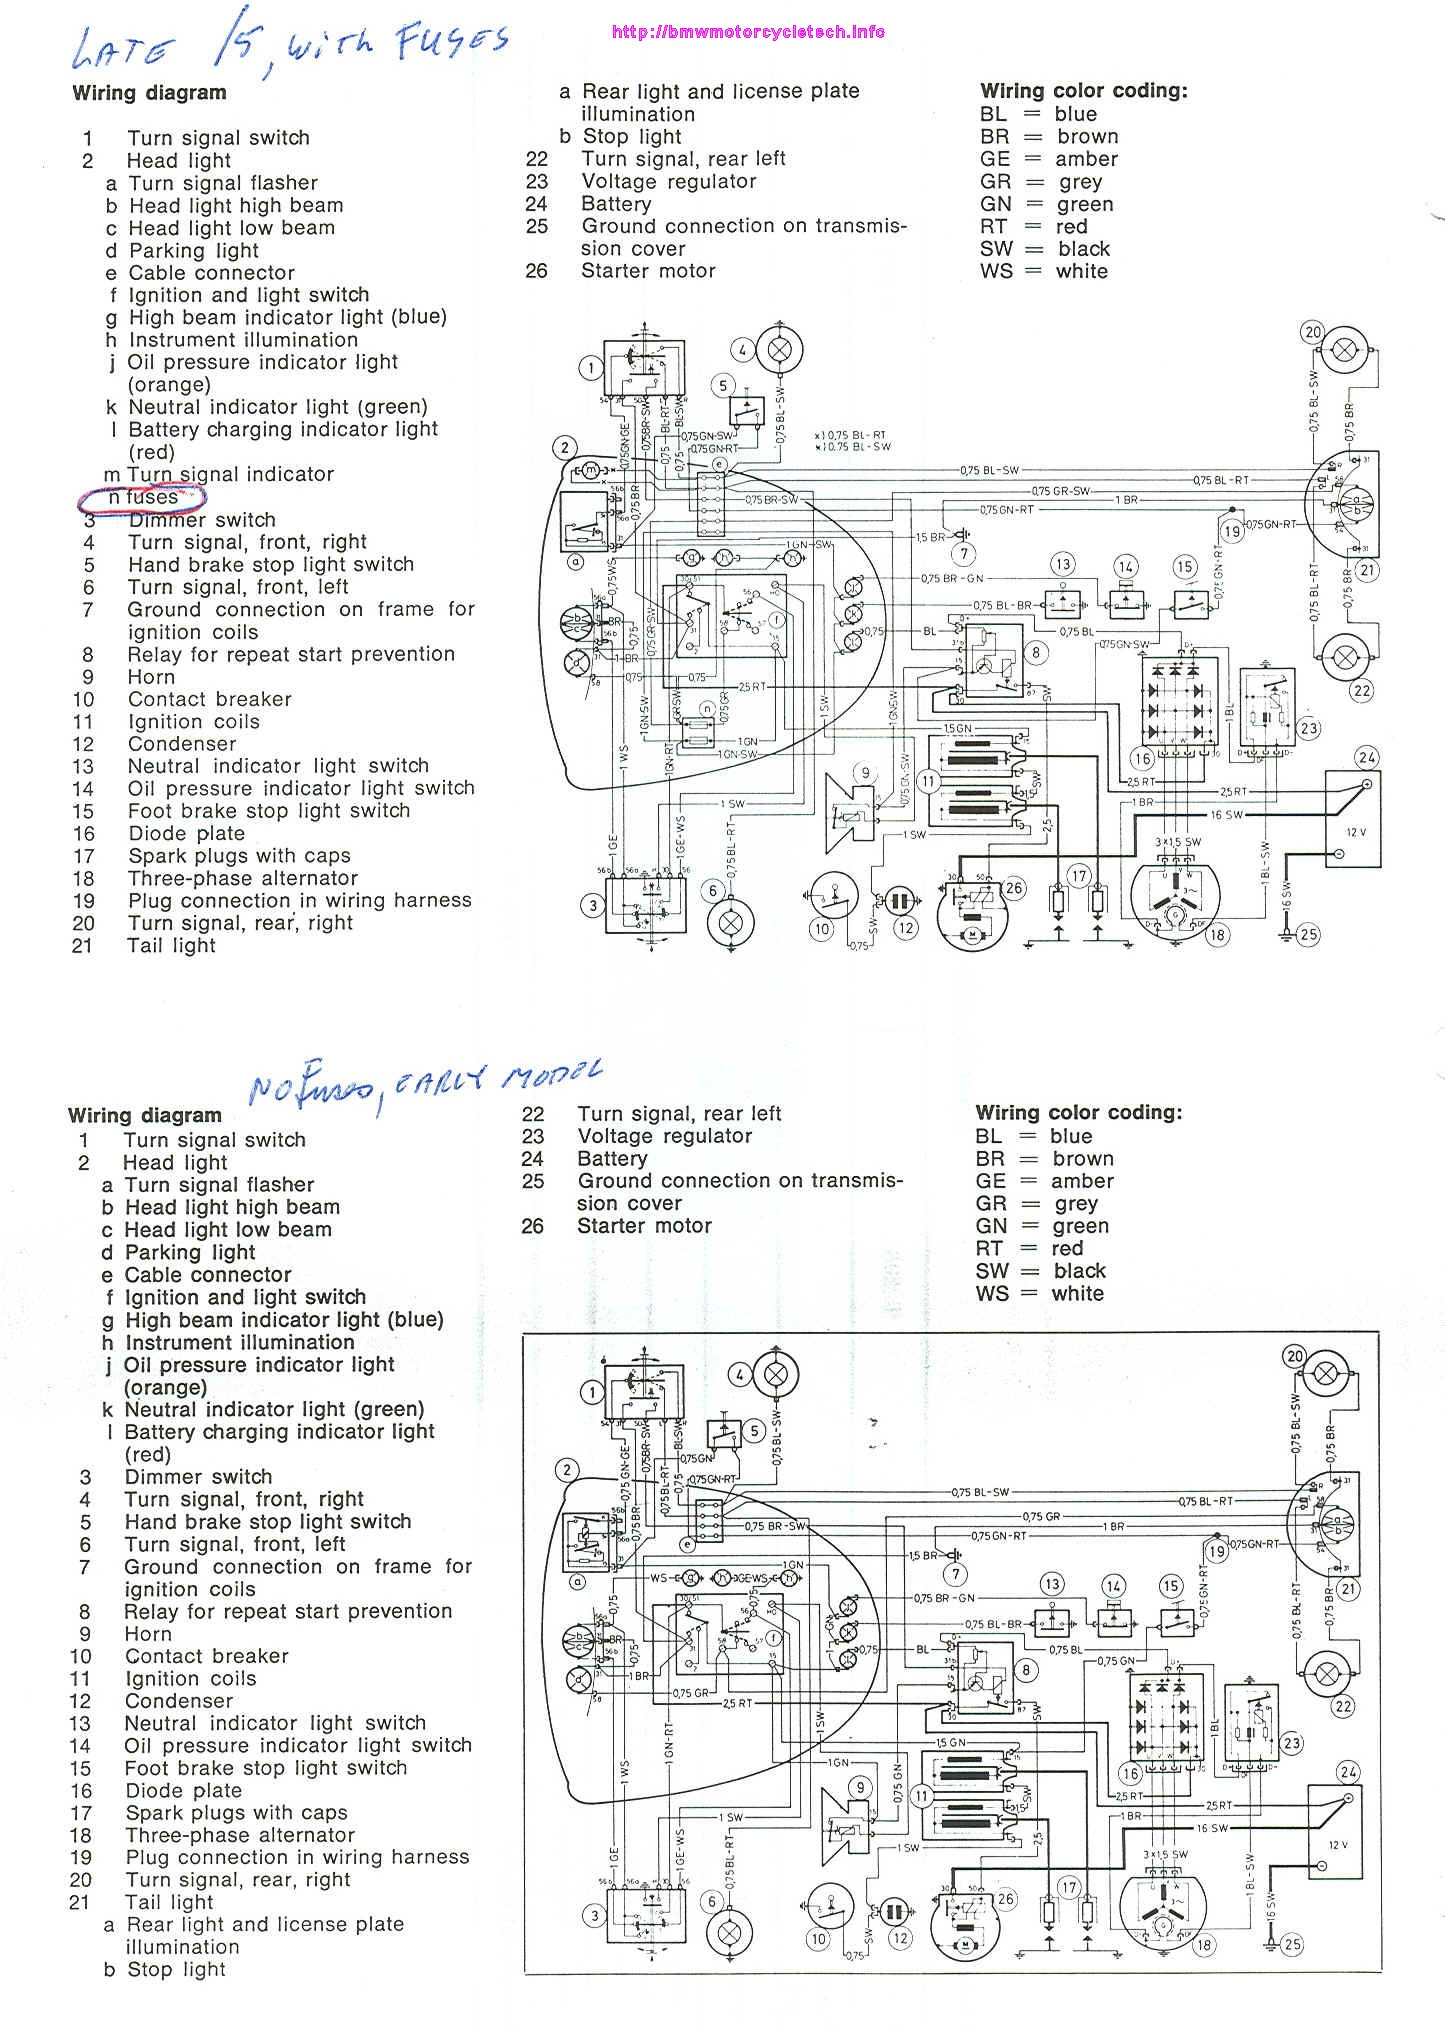 wiring diagram of bmw k100rs rt auto picture schema wiring diagram BMW K100 Scrambler 1985 bmw k100 wiring diagram wiring diagram wiring diagram of bmw k100rs rt auto picture